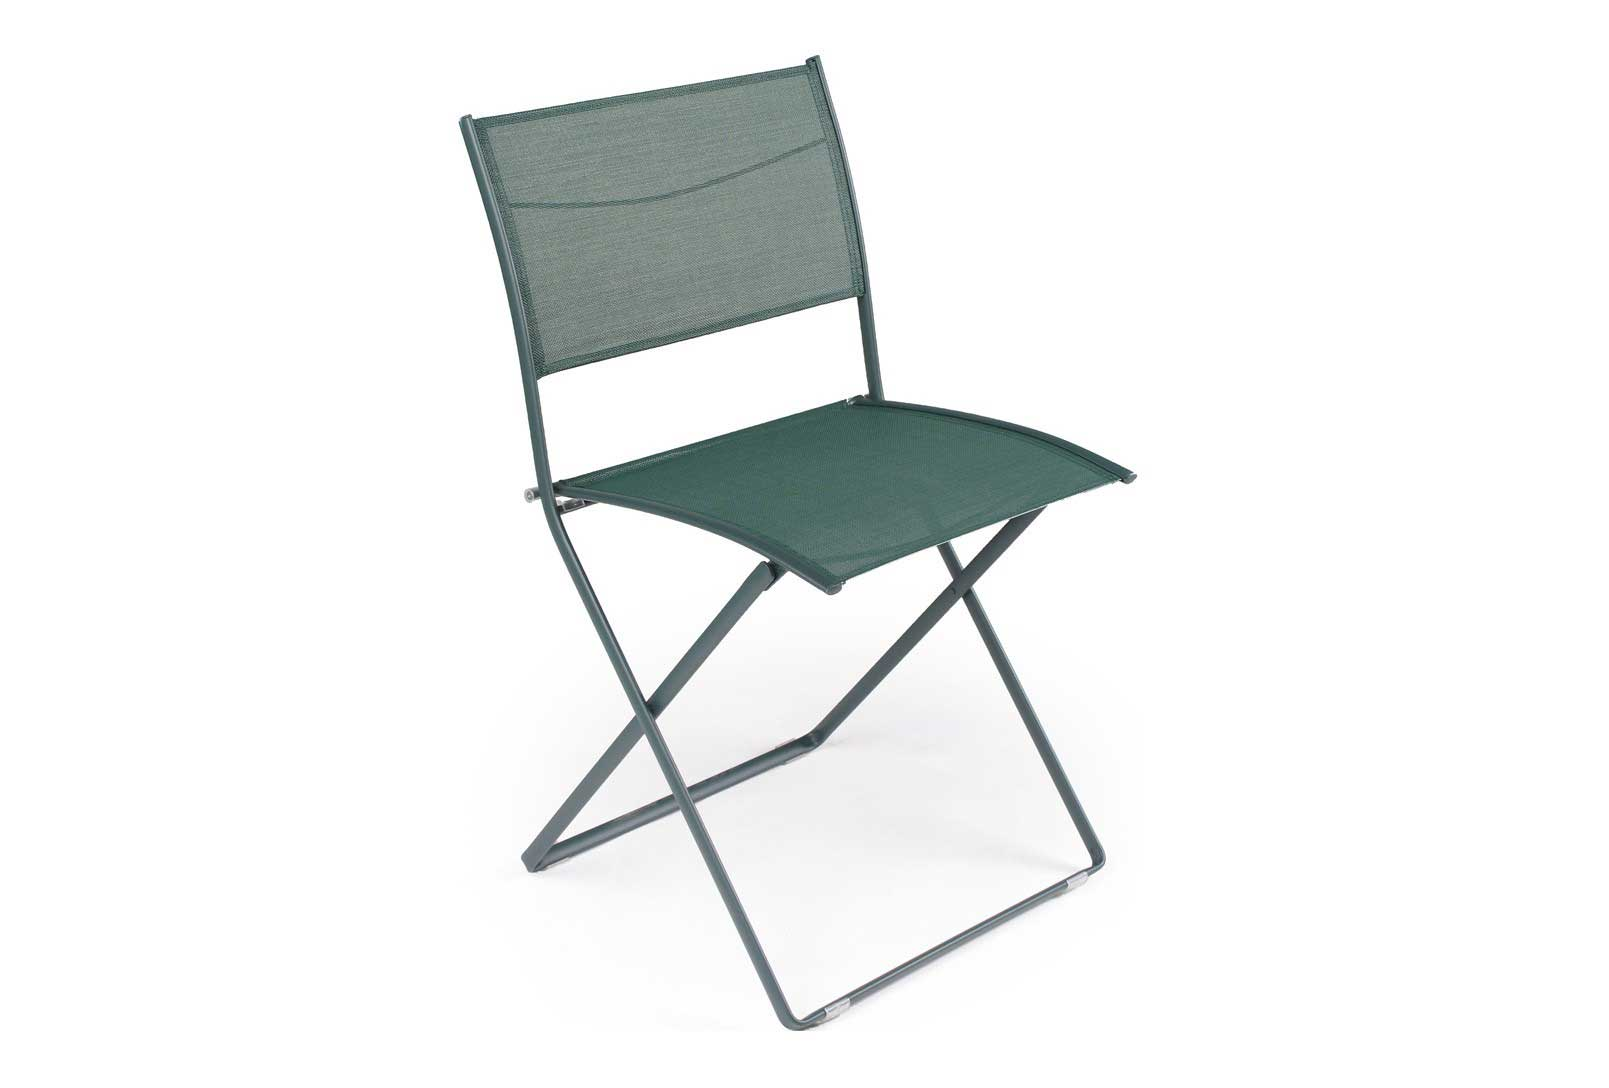 Chairs For Every Purpose Ross Stores Recalls Folding Patio Chairs Due To